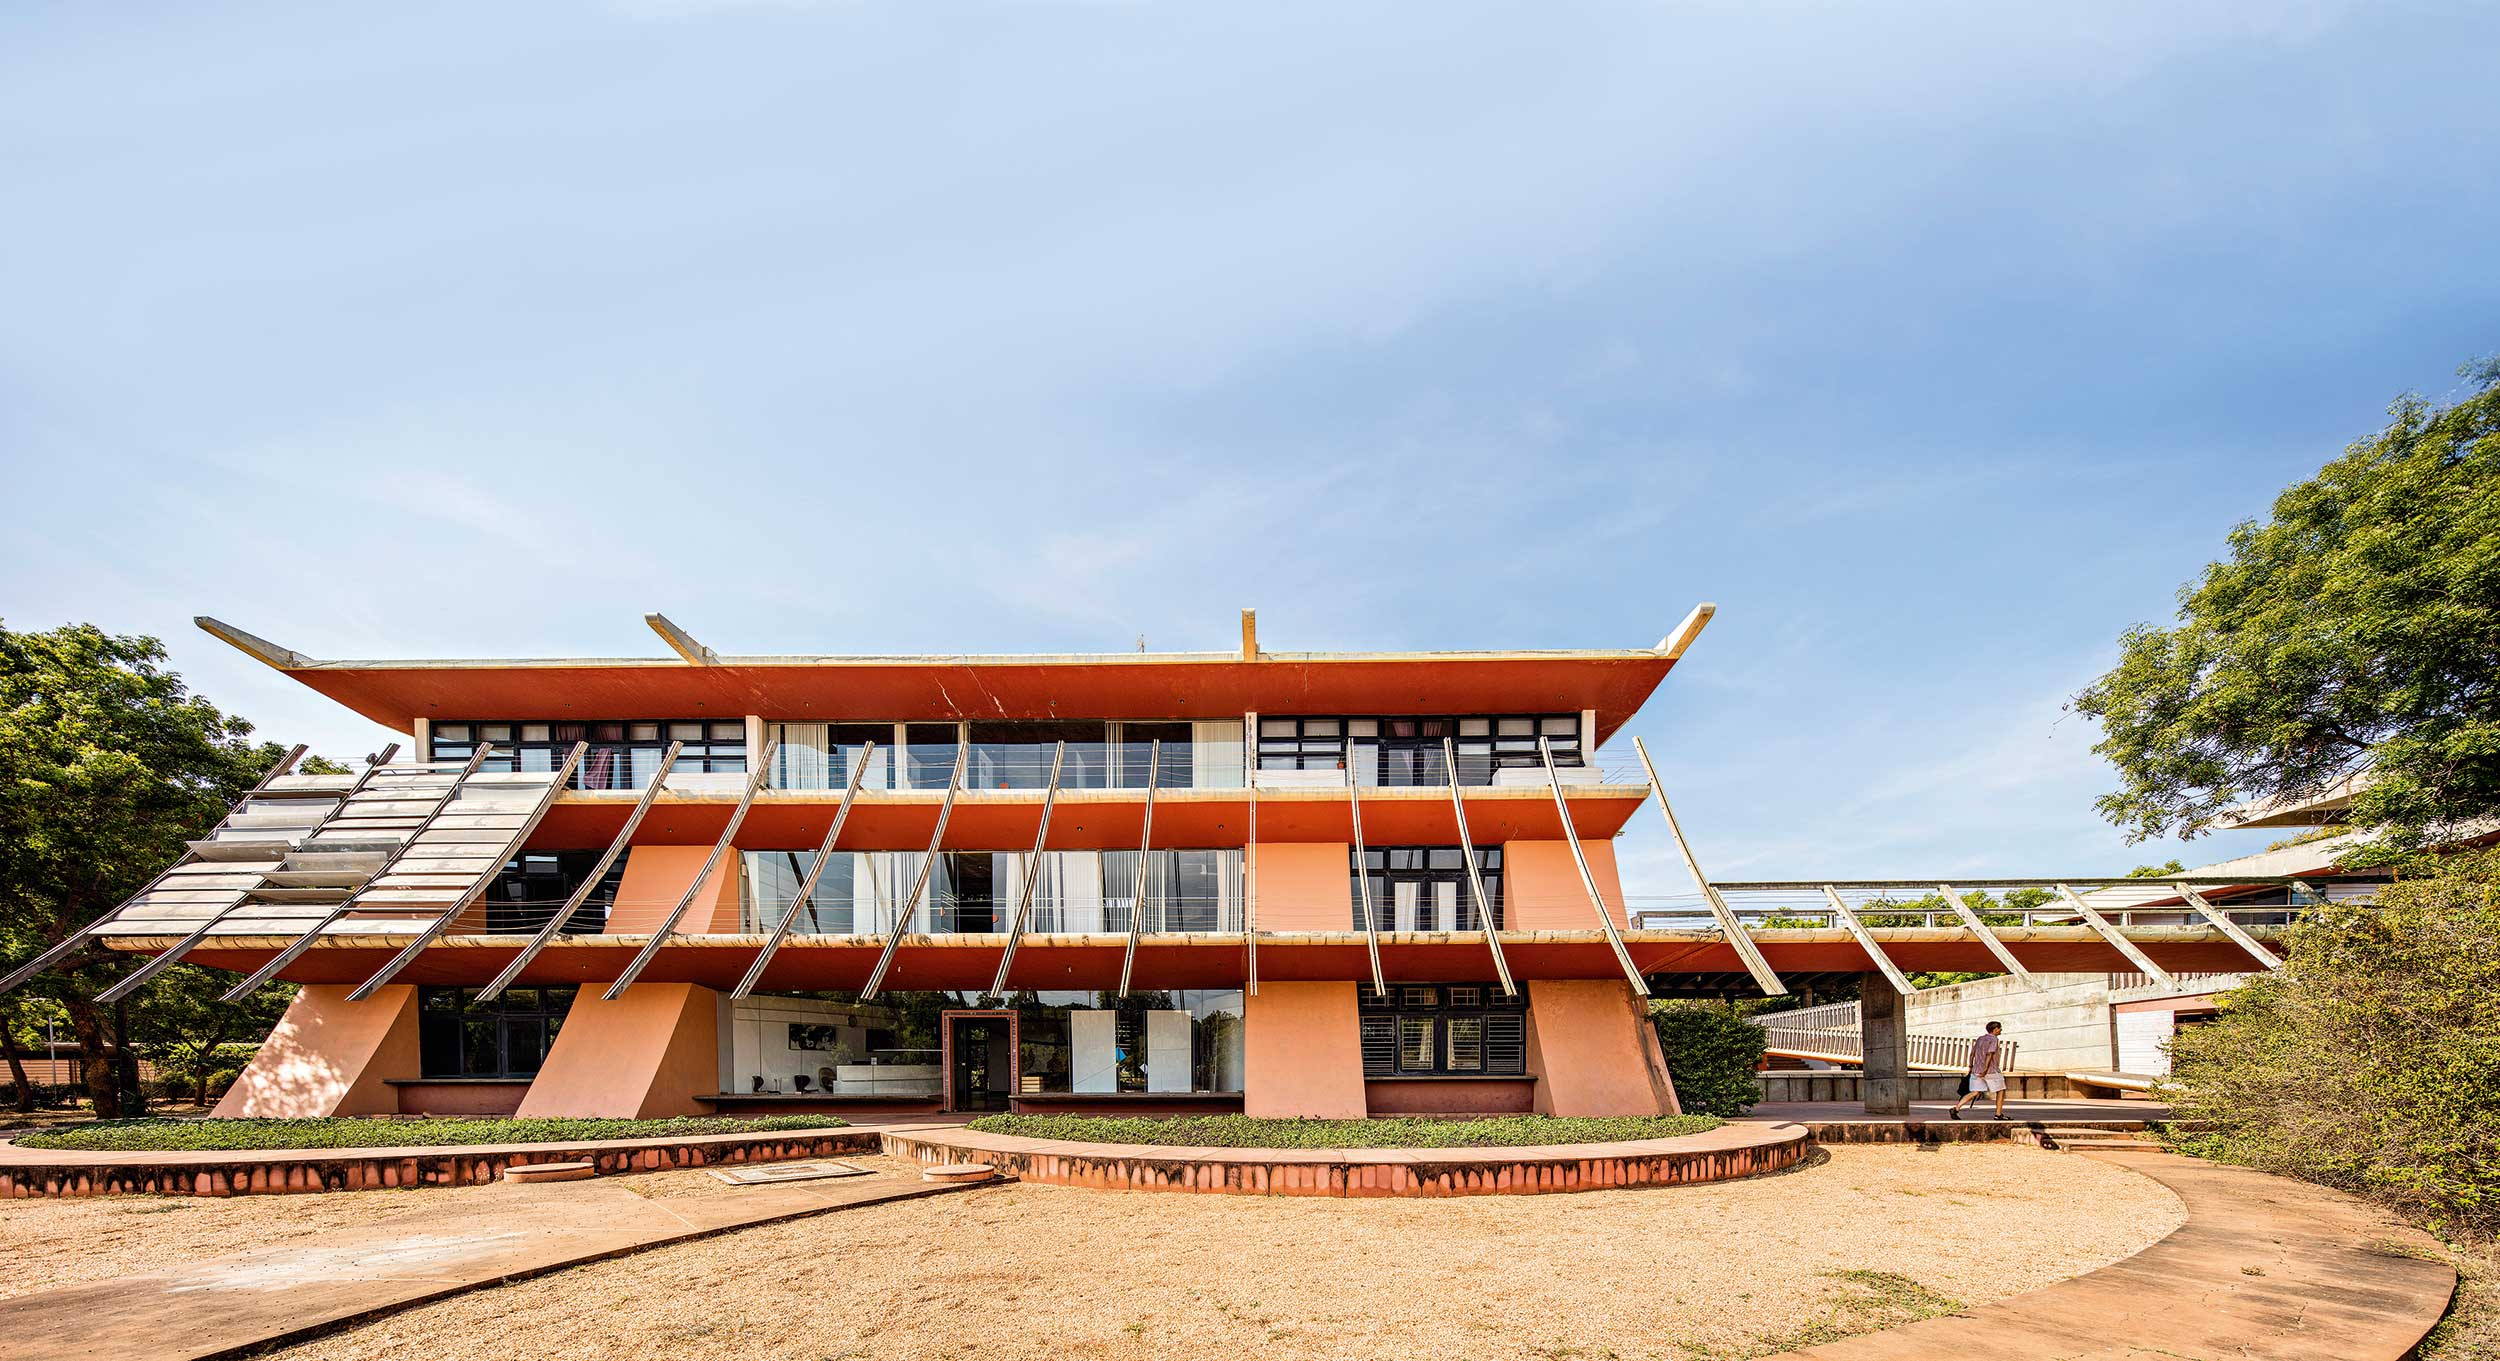 Town Hall in Auroville, India. Credit: Javier Callejas